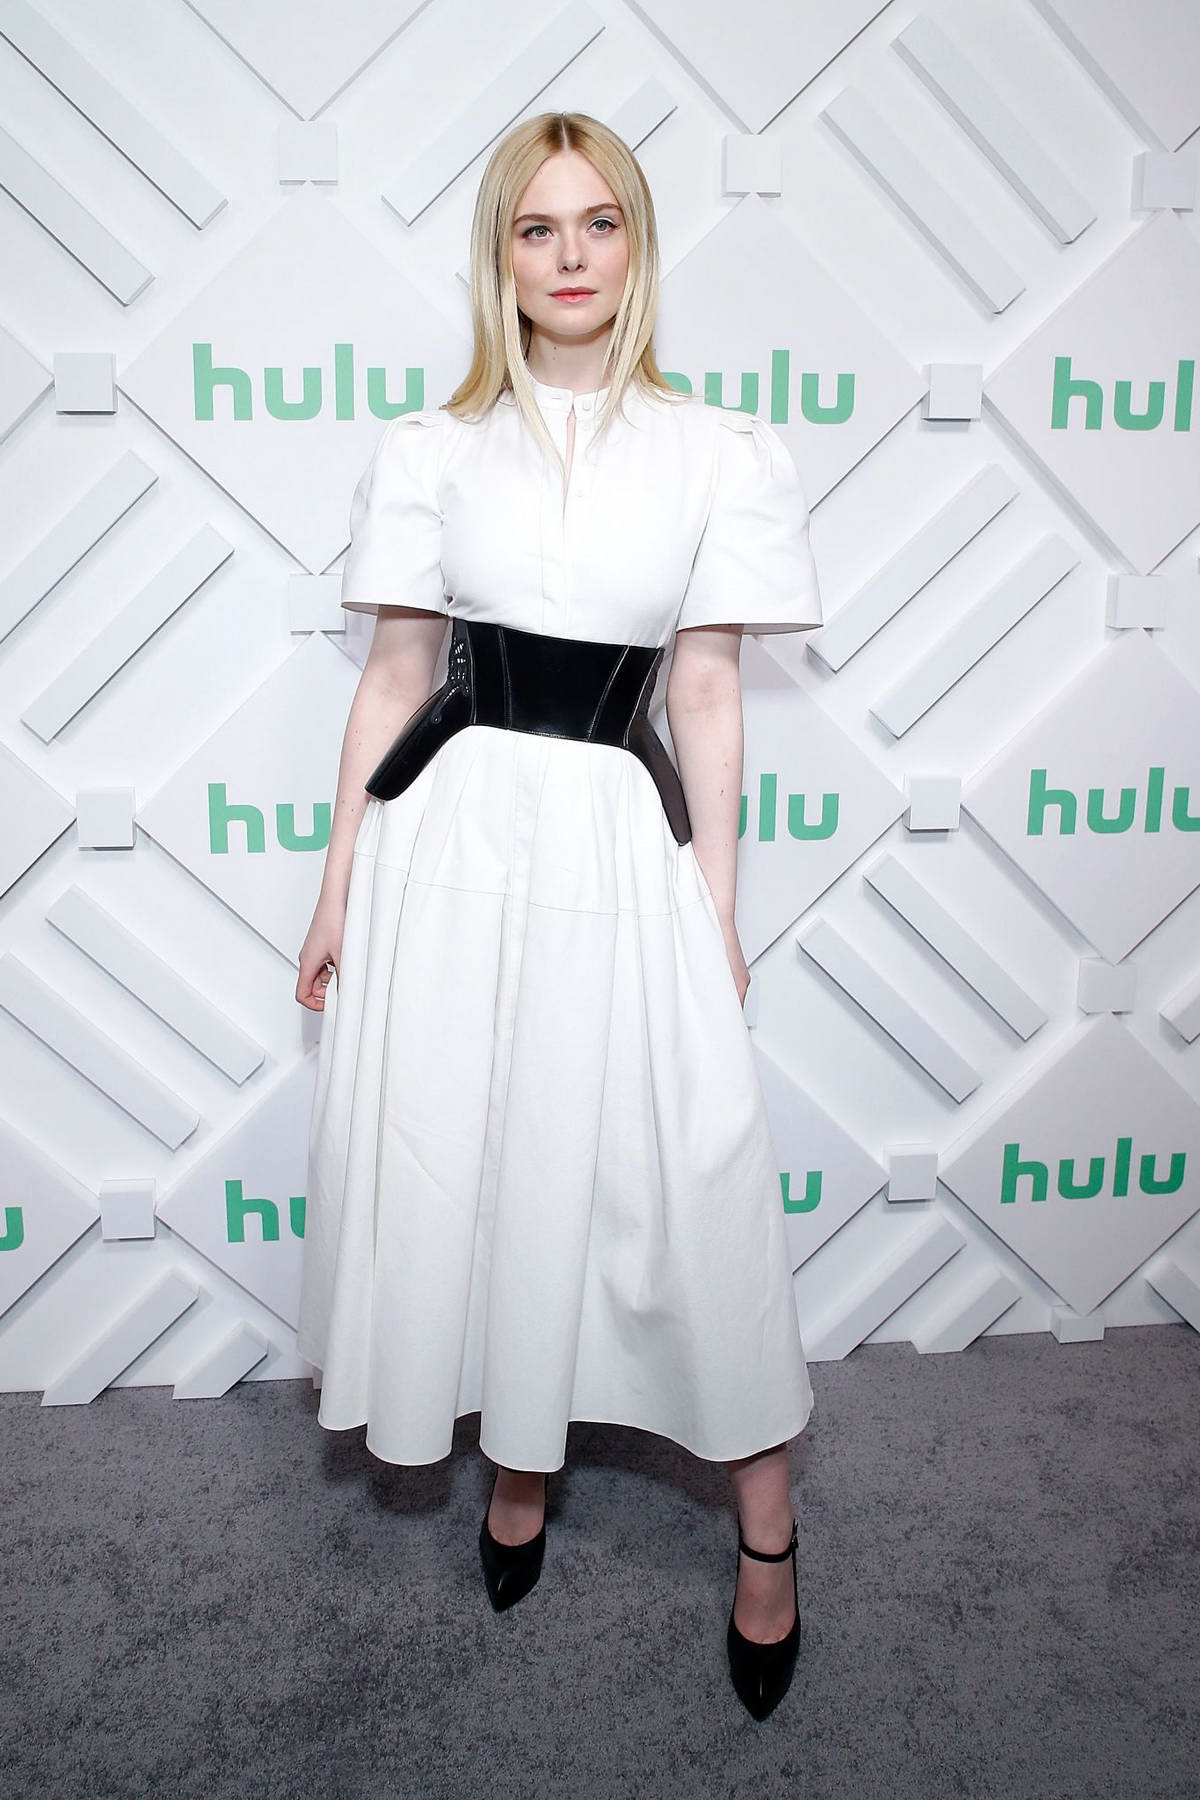 Elle Fanning attends the Hulu 2019 Upfront Presentation in New York City